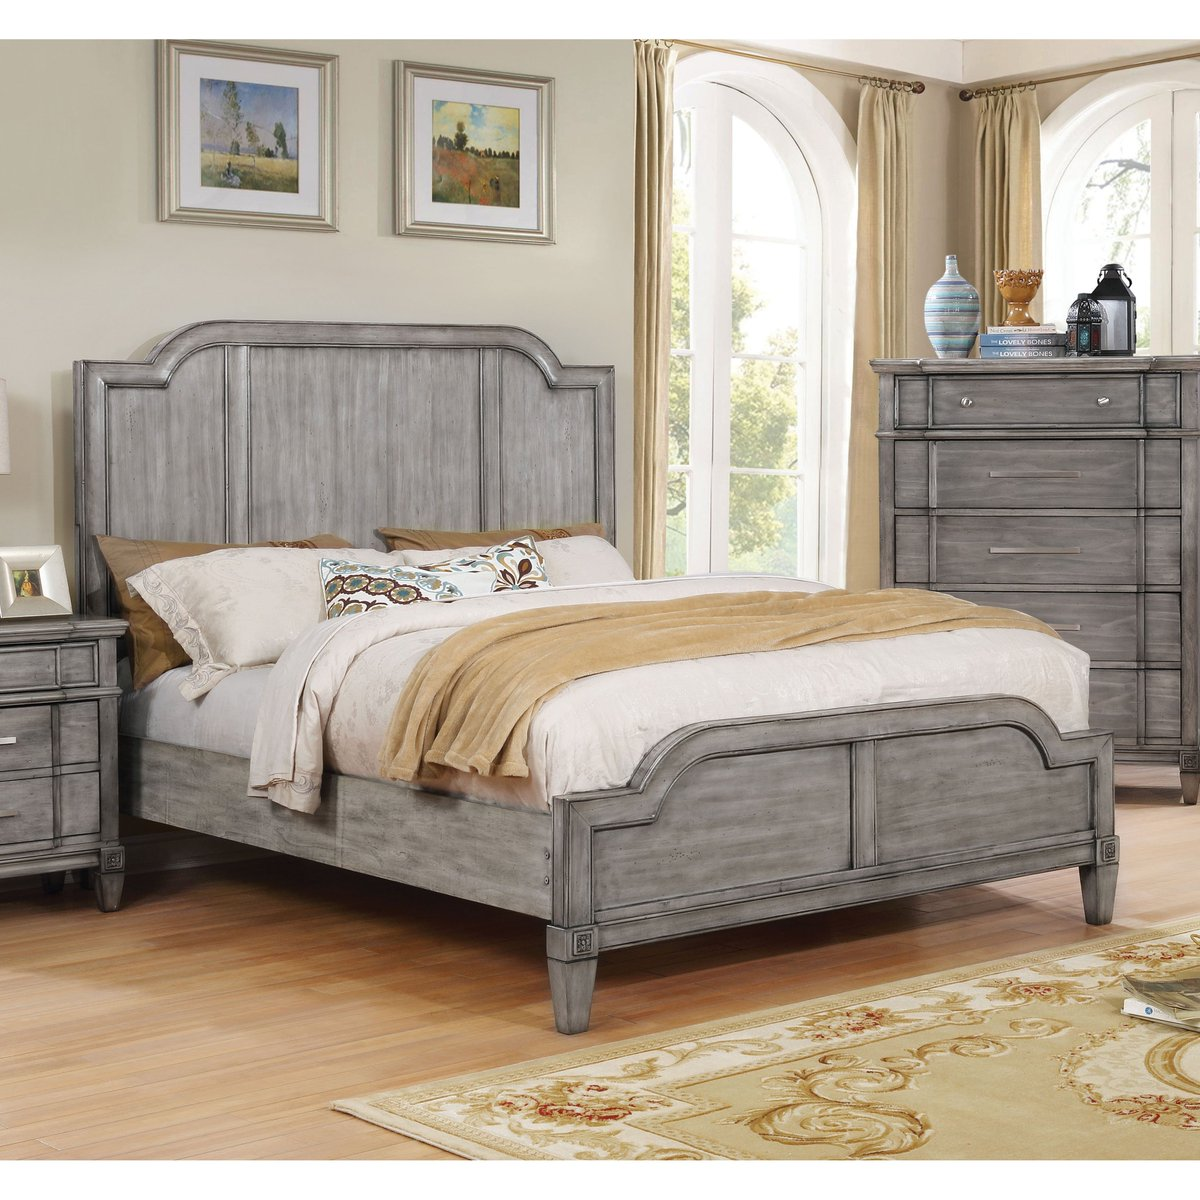 Furniture of America Dresdelle I Transitional Wooden Grey Queen-size Bed USD 1,527.00 https://t.co/DryibEbuiE https://t.co/RfA4gQ2f0s